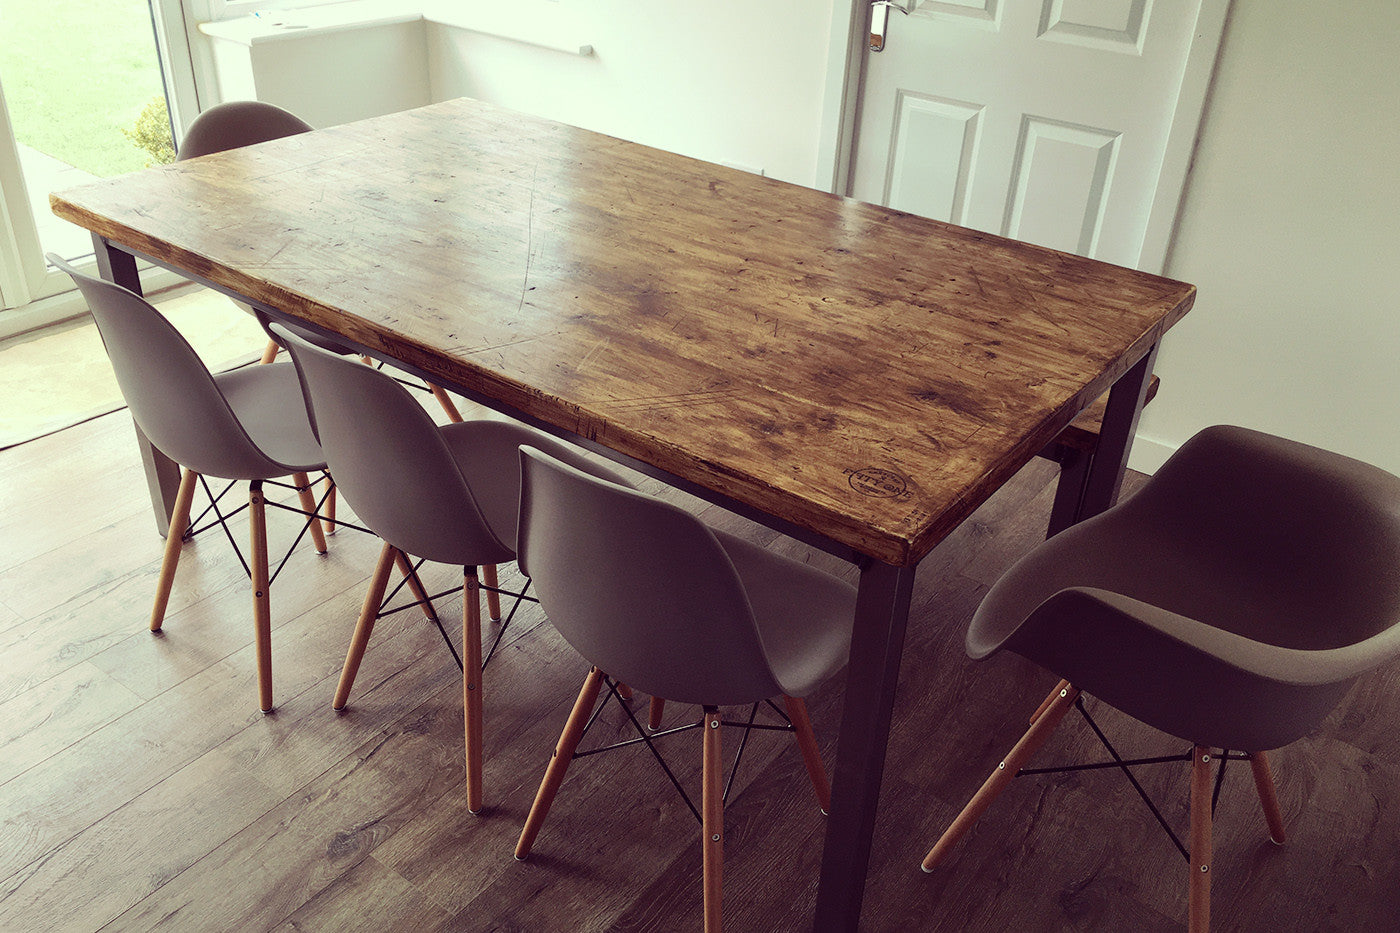 Industrial Dining Table 8 Seater - Crescent Fifty One